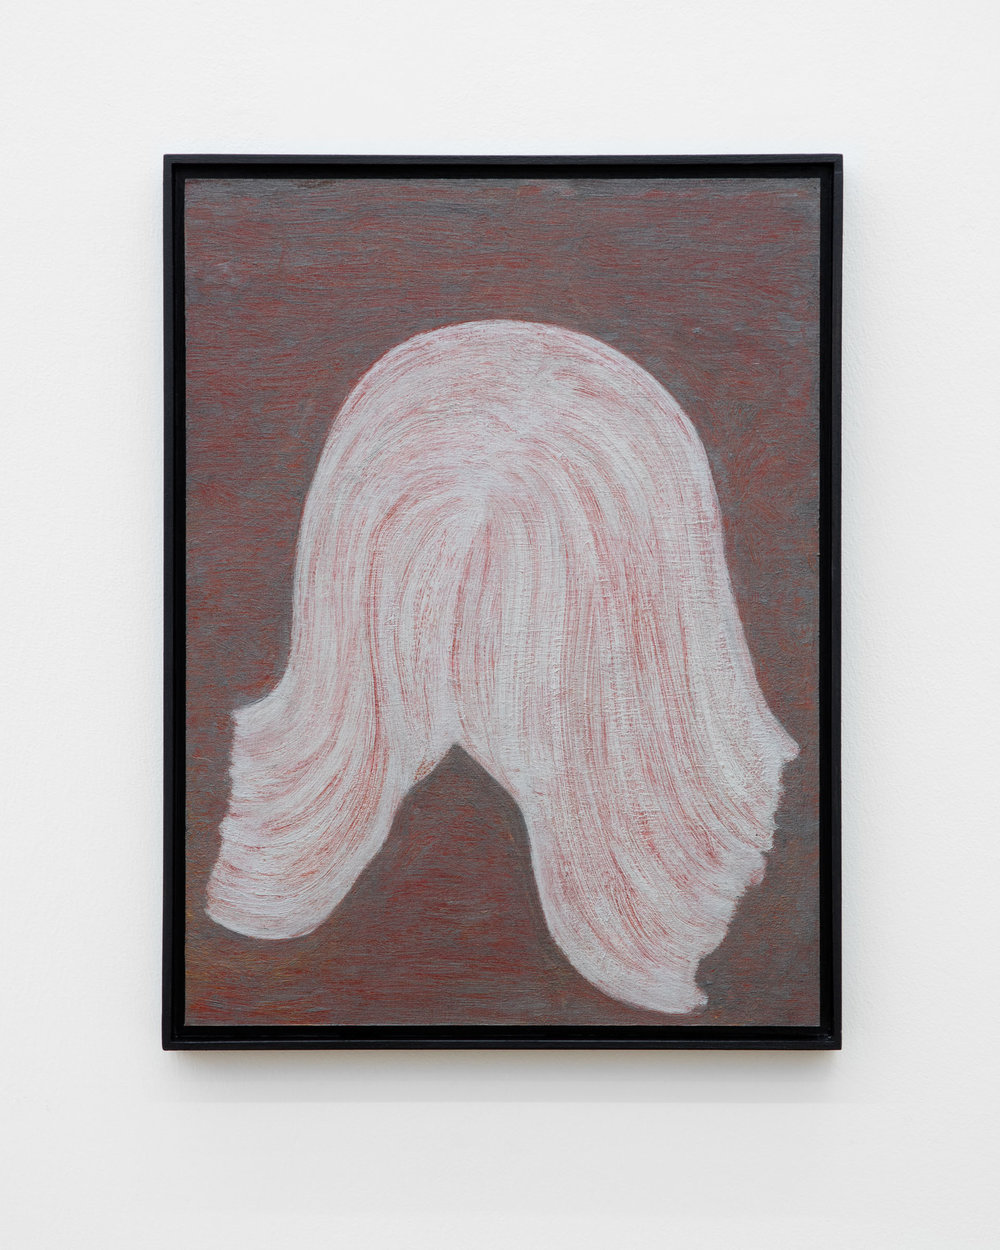 Veronika Hilger: Untitled, 2019, oil on paper on MDF in artists frame, 39,7 x 29,7 cm